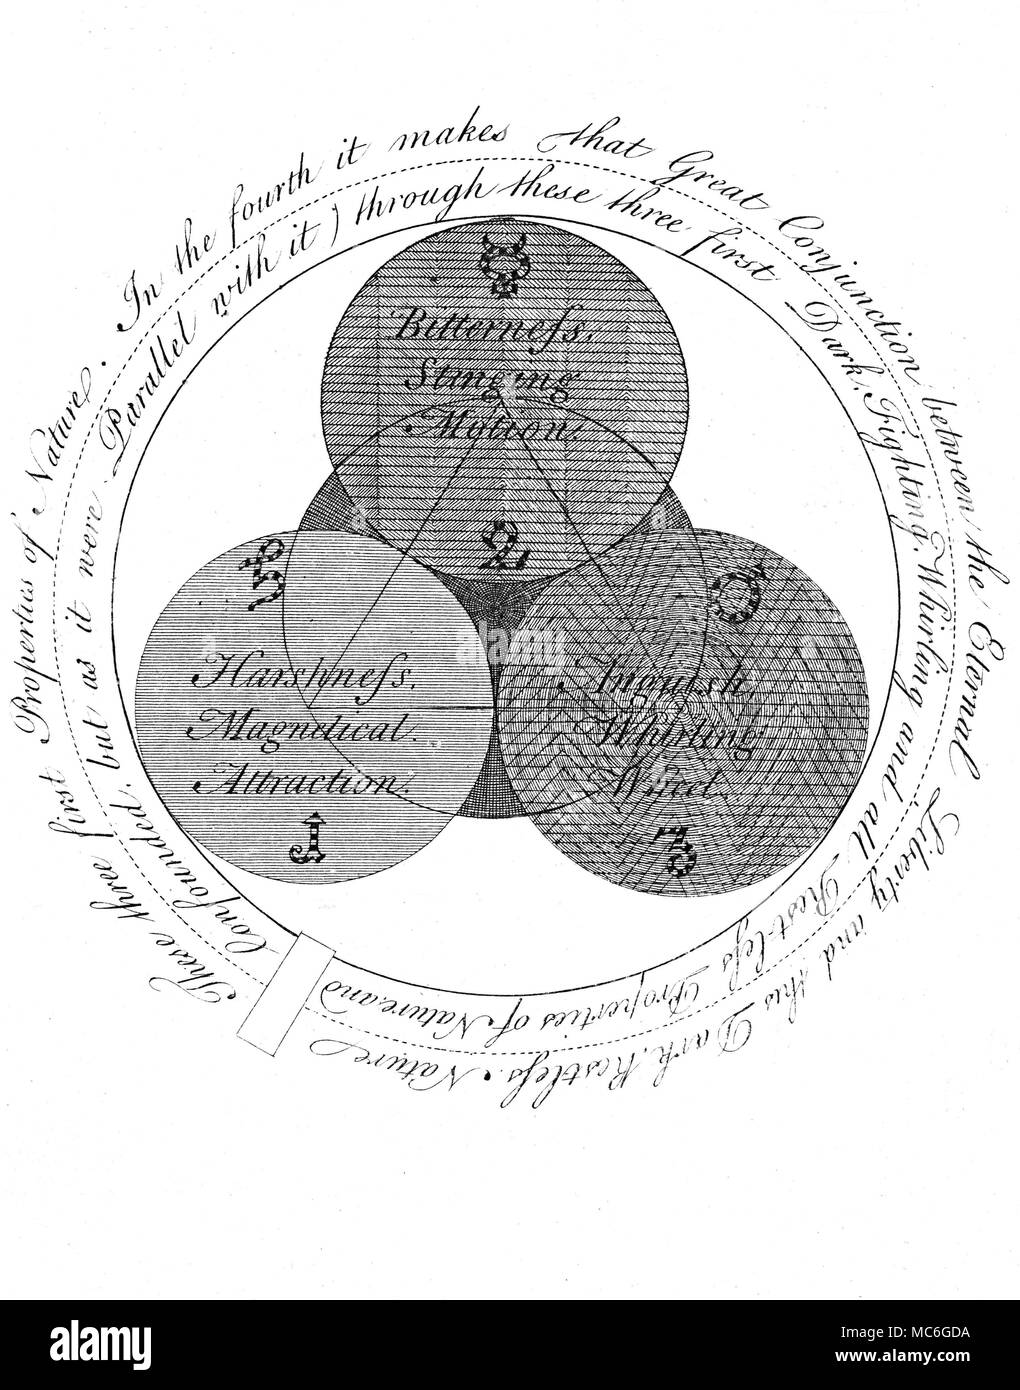 SYMBOLS - OCCULT ART - ROSICRUCIANS - SPIRALS One of a series of influential occult engravings by William Law, in explication of the principles  in the arcane thought of the Rosicrucian, Jacob Boehme, from The Works of Jacob Behmen, The Teutonic Theosopher, Vol 1, 1764. Plate 2 - which is a literal textual continuation of plate 1, and which develops the Three Properties or Principles  (the Salt, Sulphur and Mercury of the alchemical tradition) that emerge from the act of creation (the manifestation, so to speak, of the Trinity at the centre of the previous plate).   This expansion of the prima - Stock Image